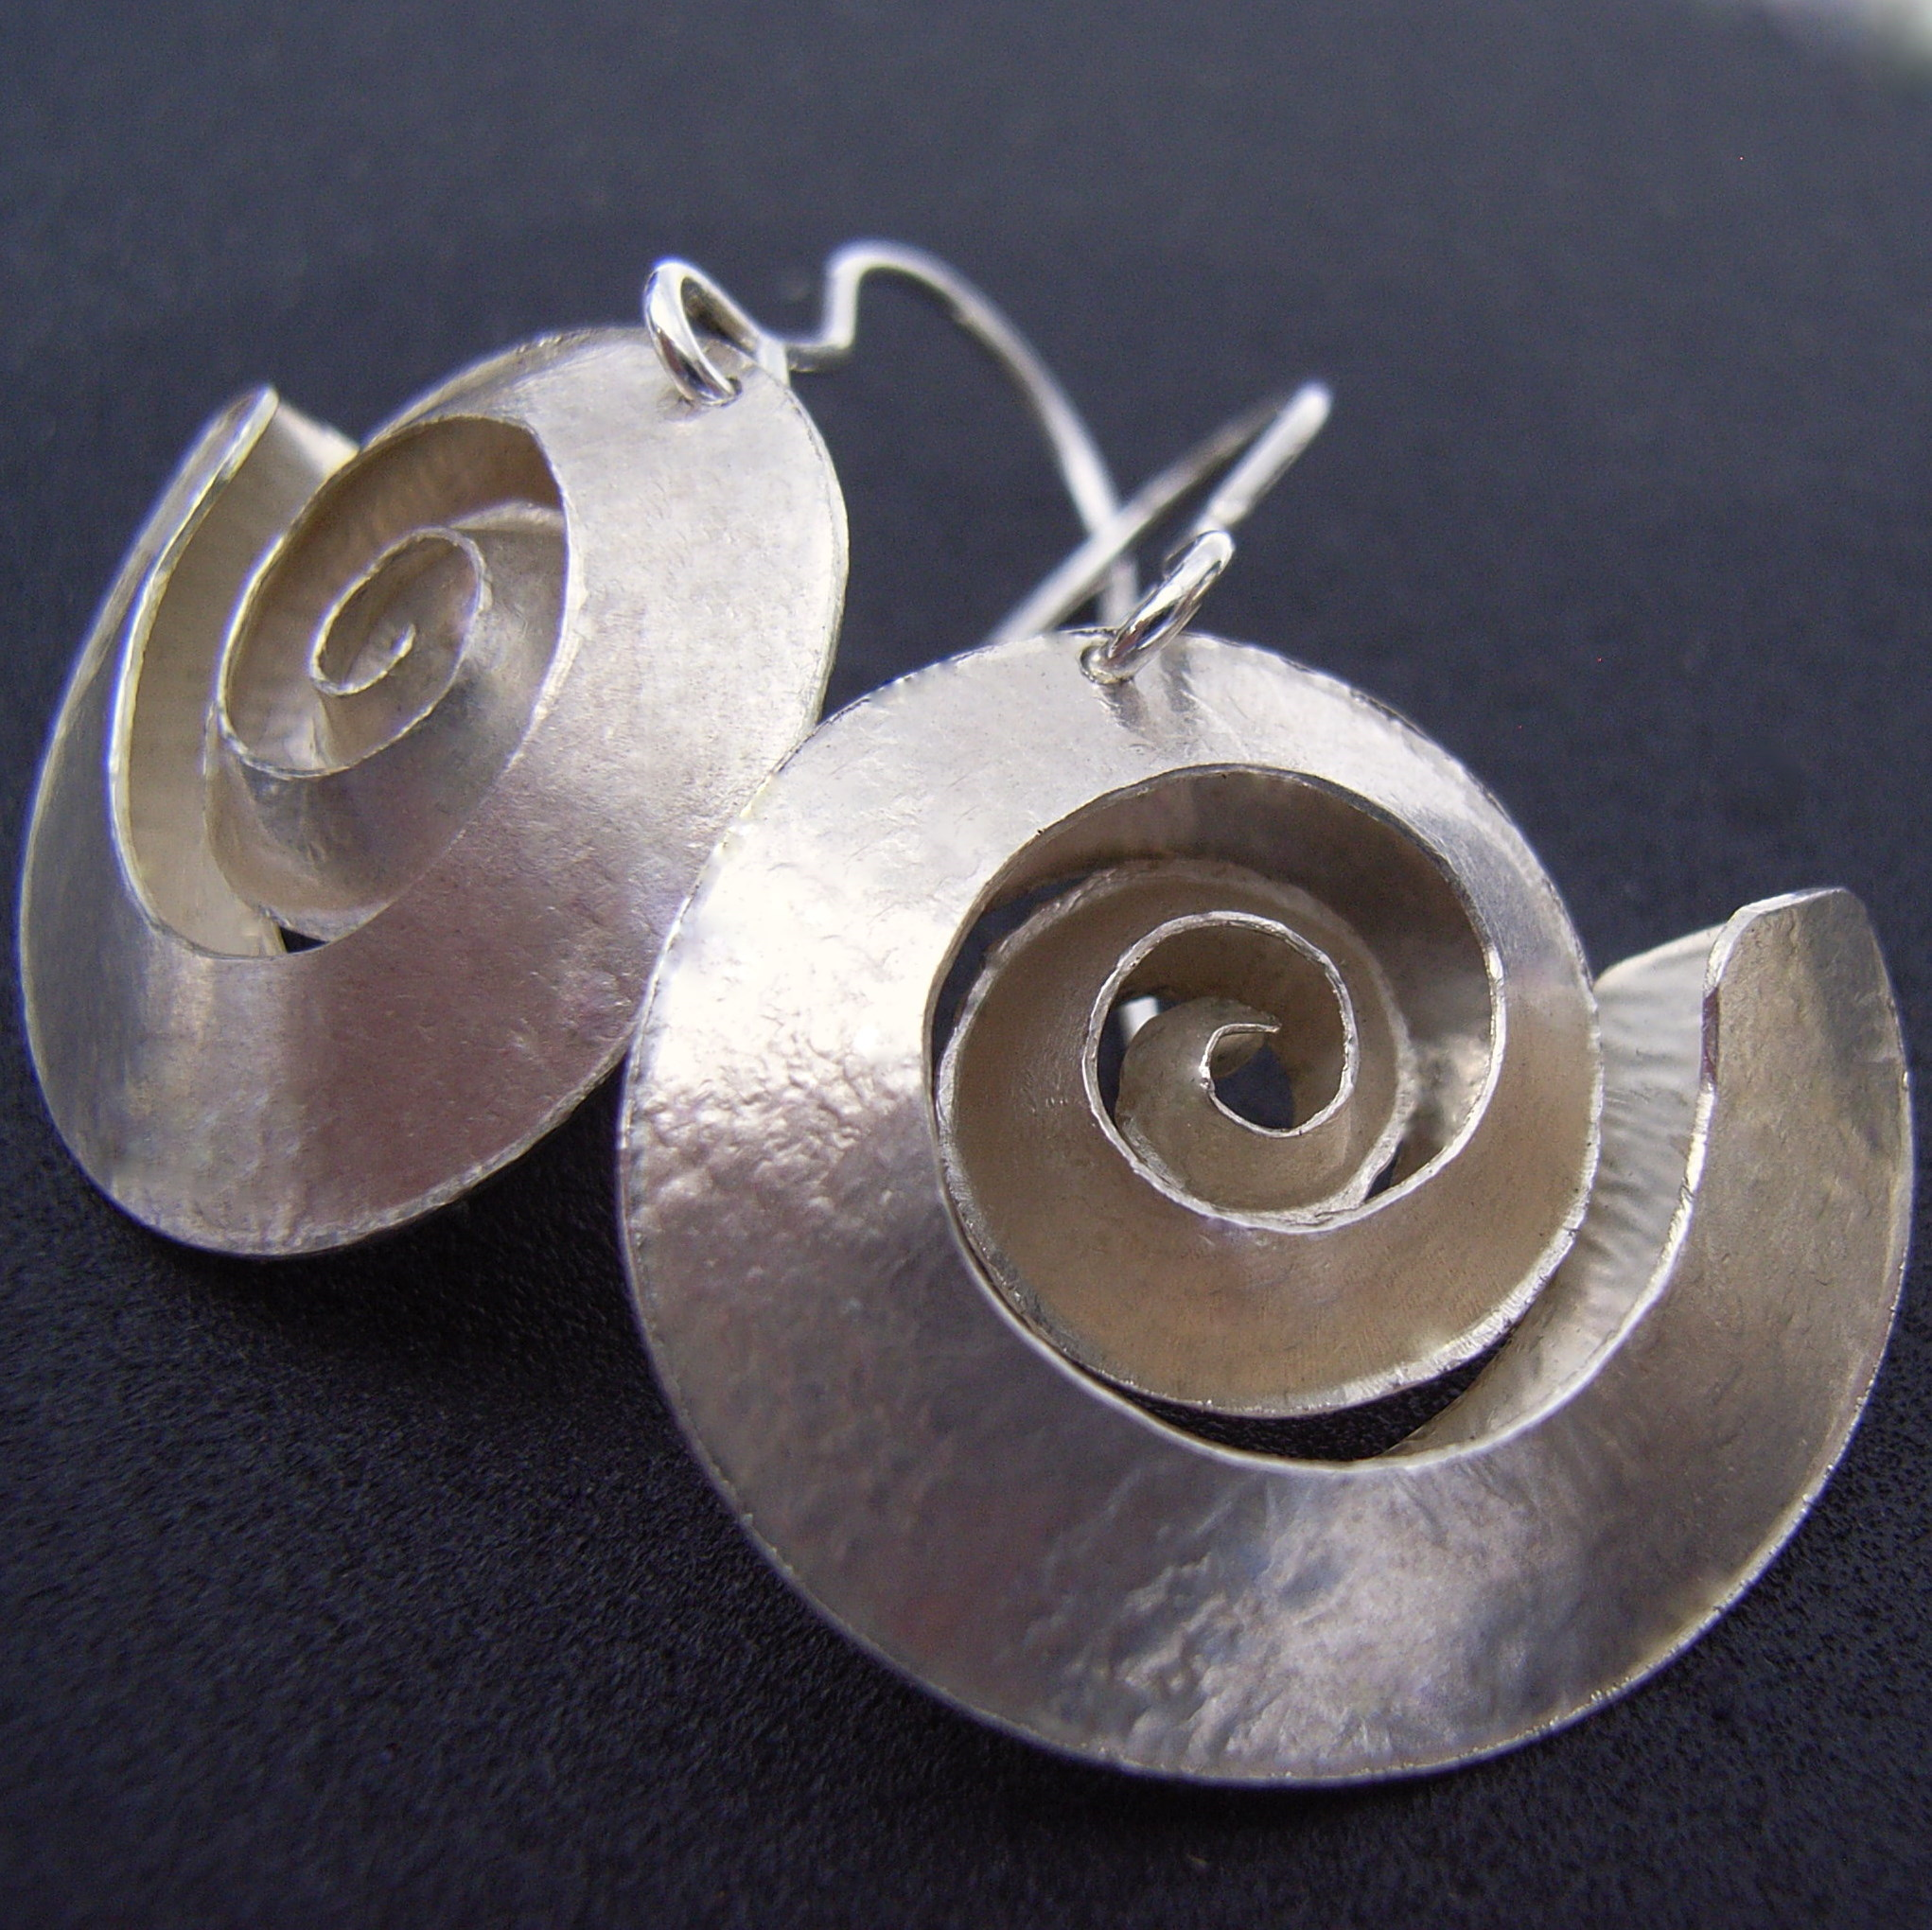 stewart veronica by avenue at artwork gallery medium contemporary mixed earrings metal the